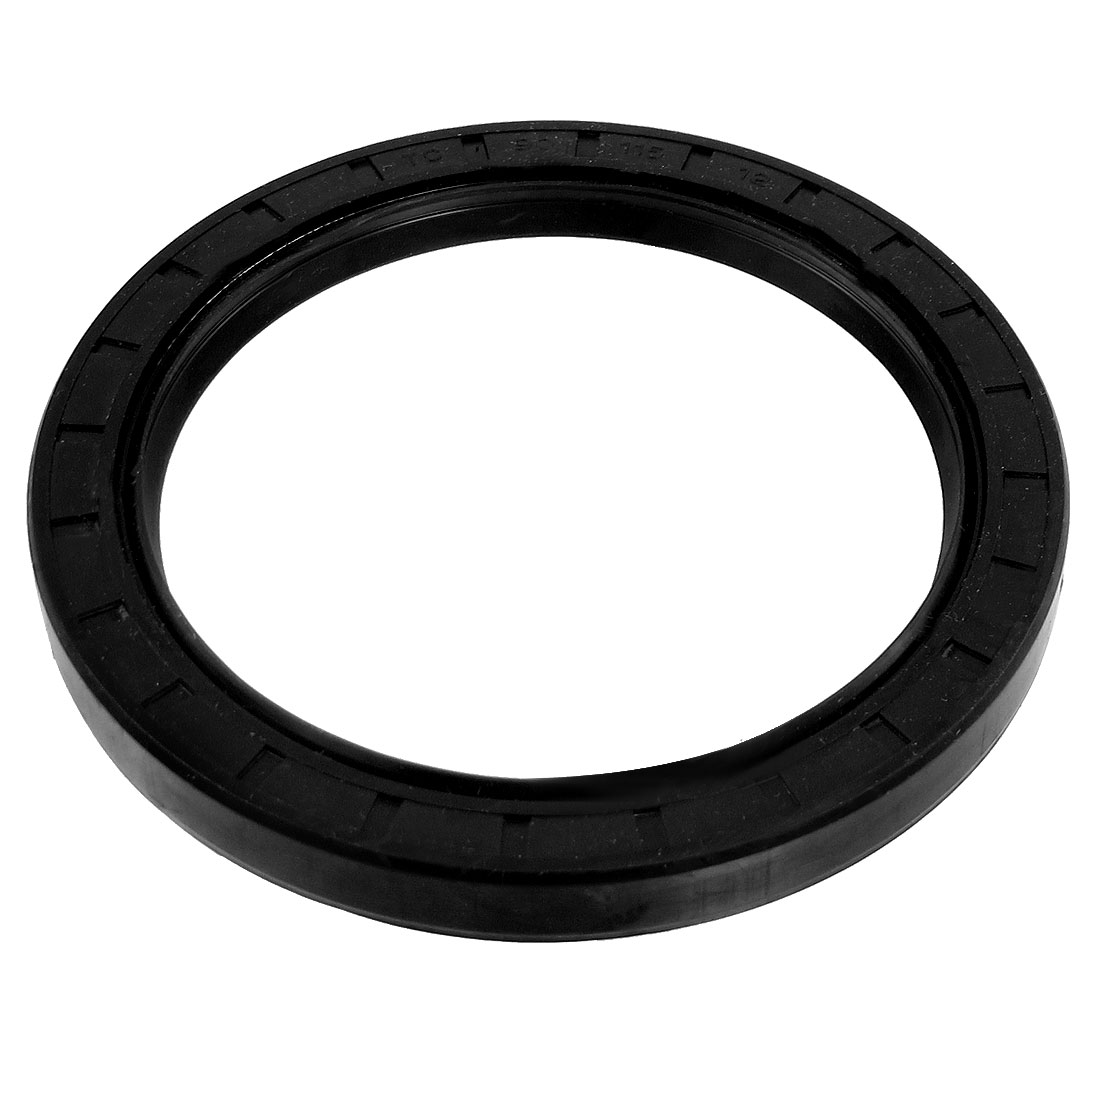 Steel Spring NBR Double Lip TC Oil Seal Black 90mm x 115mm x 12mm